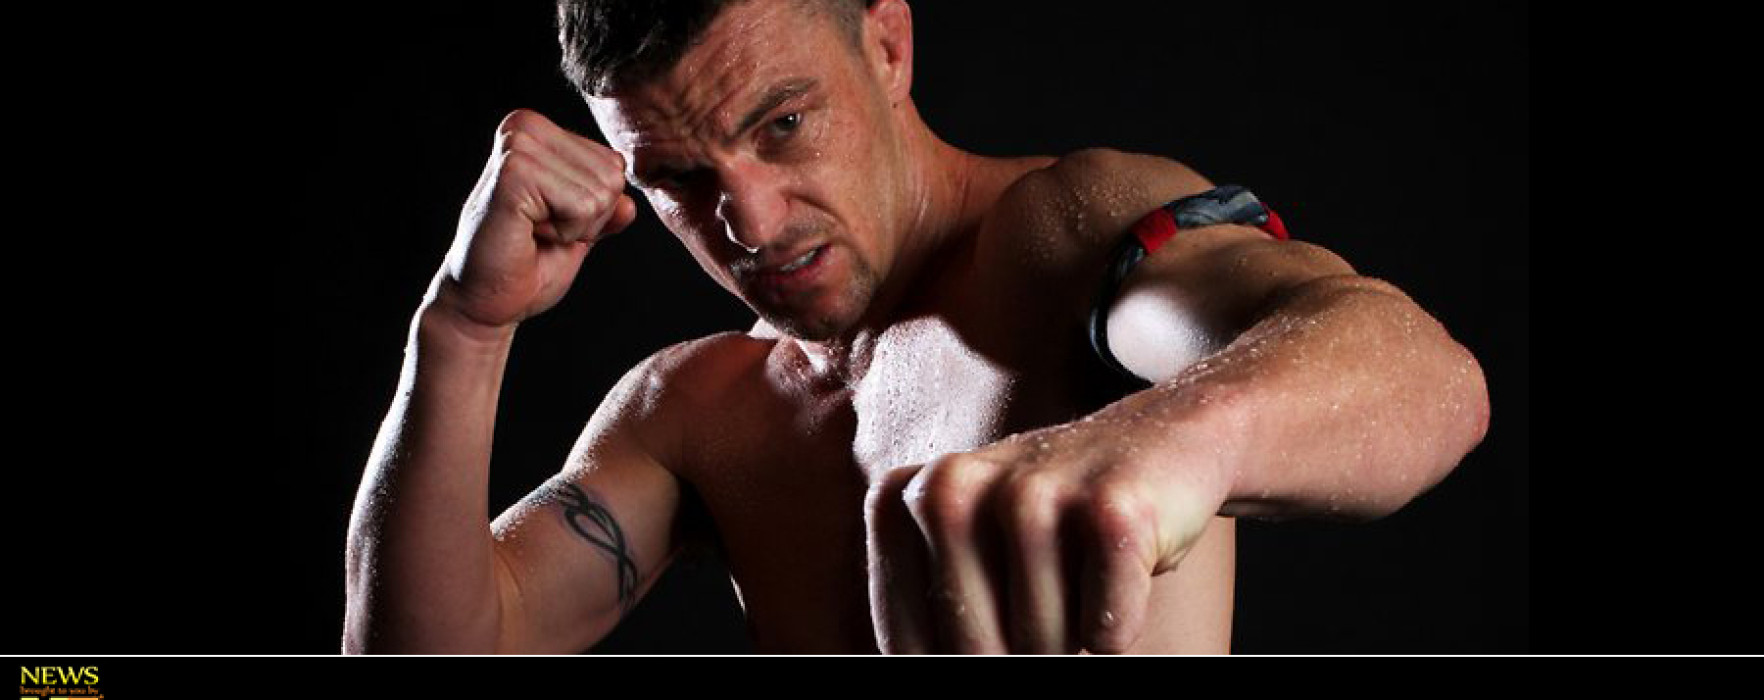 Interview to John Wayne Parr